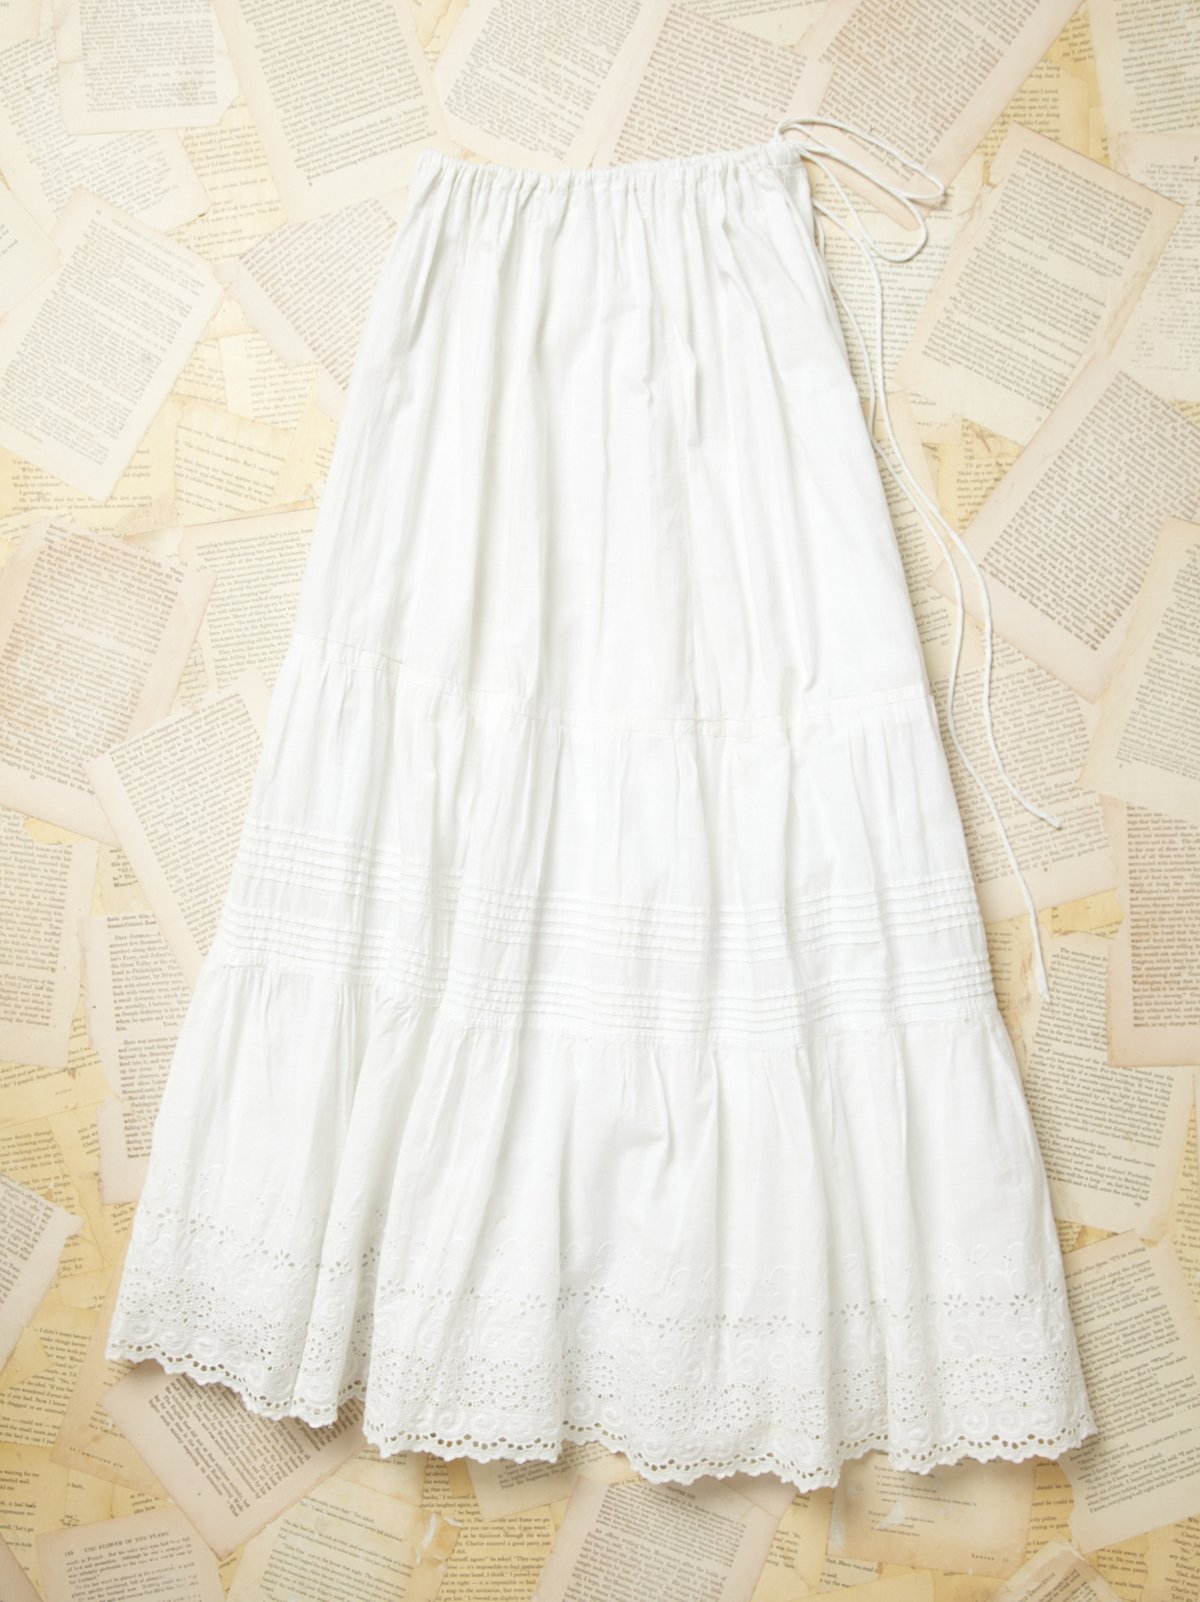 Vintage 1900s Tiered Victorian Petticoat